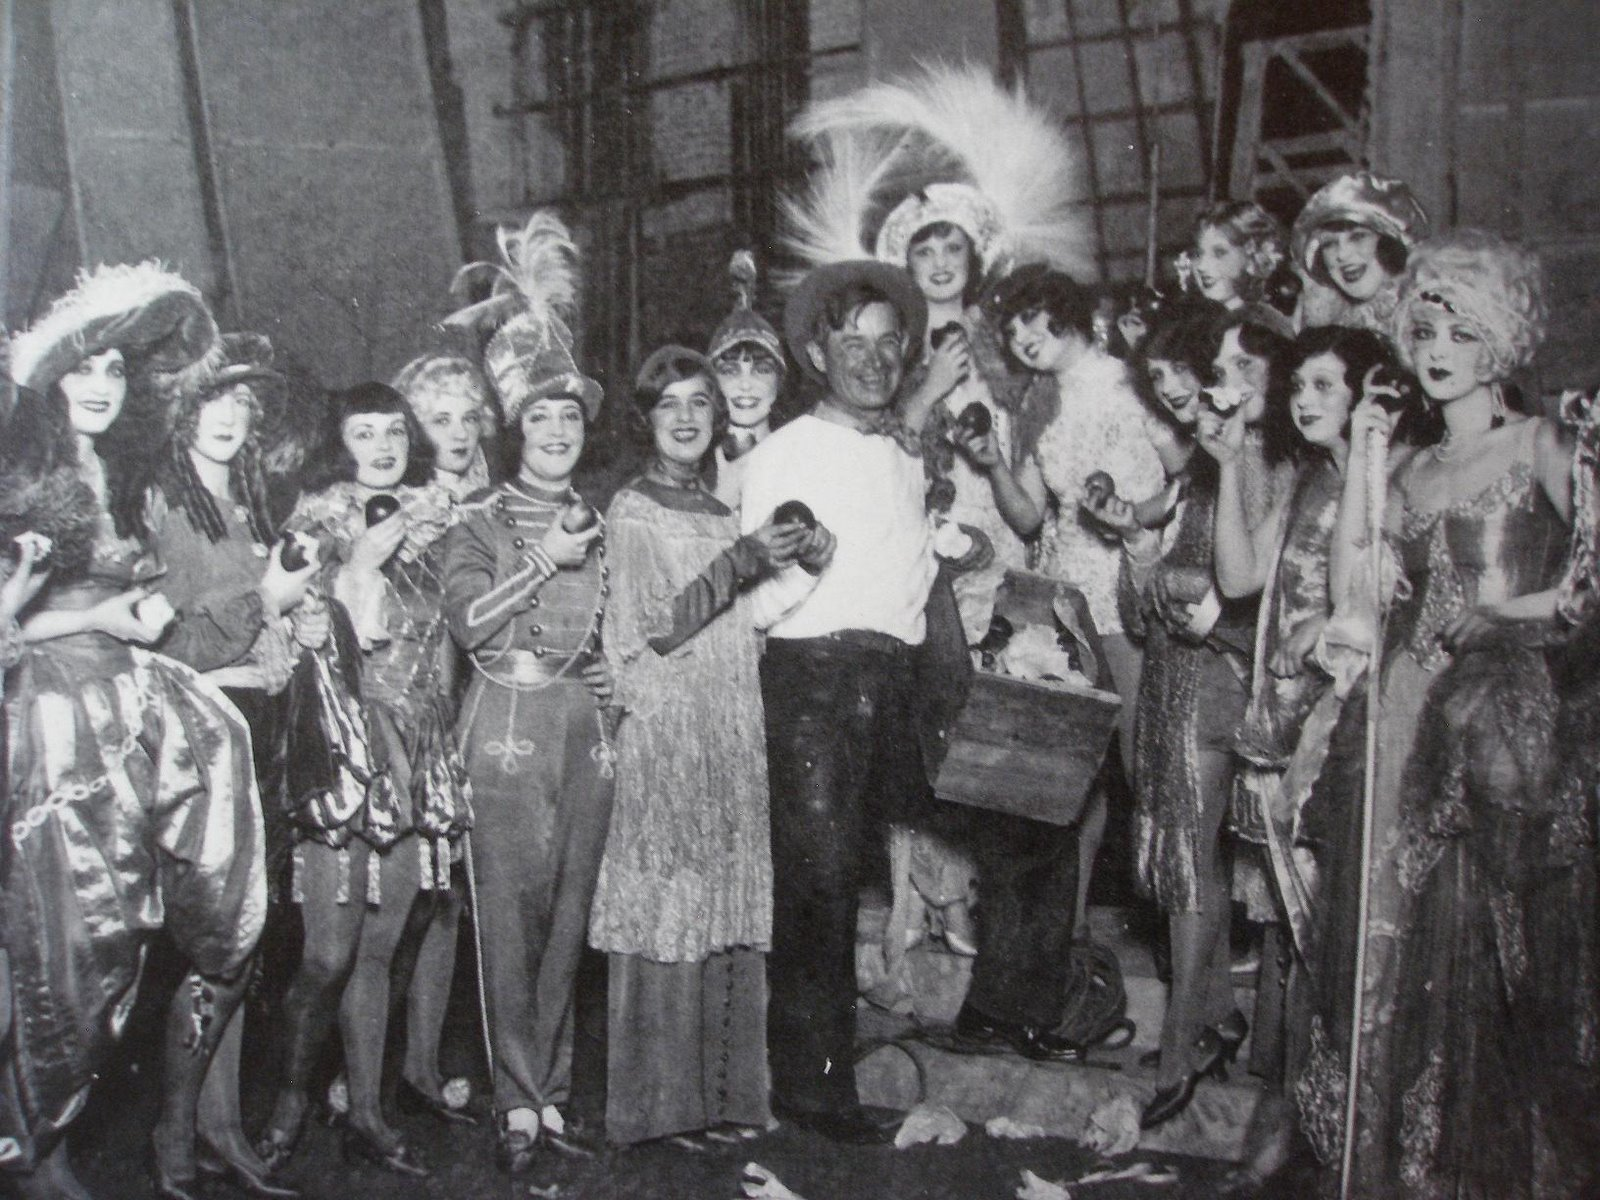 Will Rogers and the Follies Girls